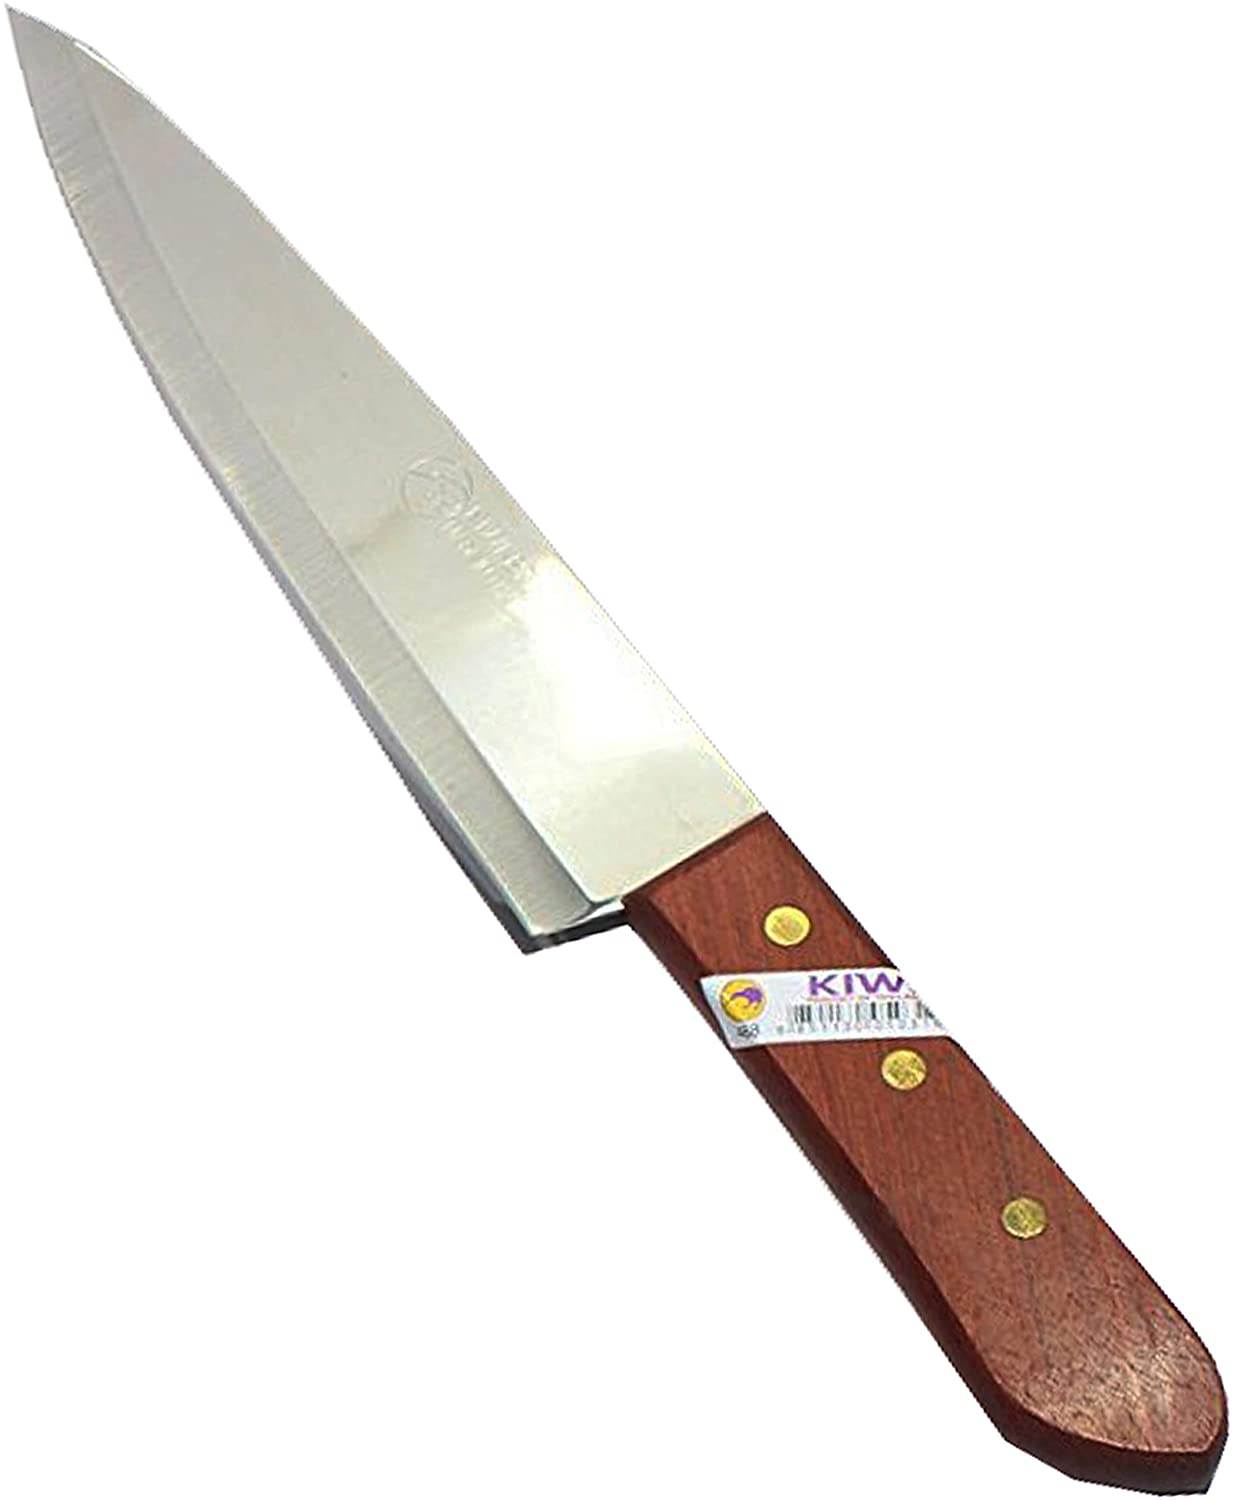 KIWI Knife Kitchen Cut Sharp Blade Cookware Stainless Steel Size 7.6 Inch (No.488)